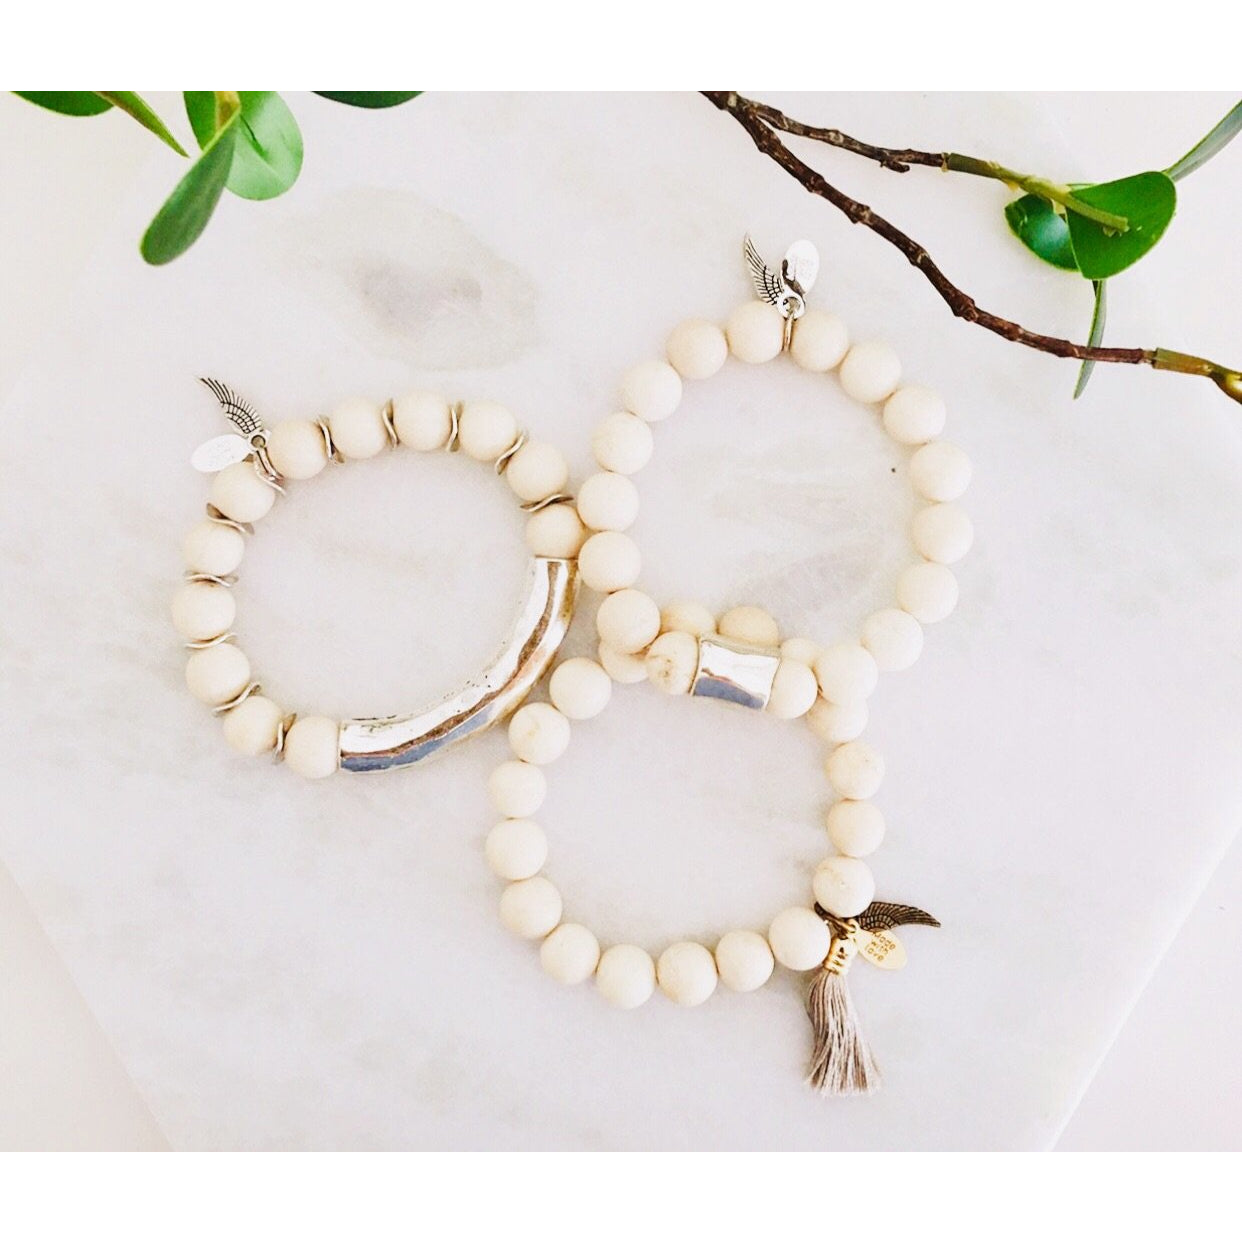 ( Sold Out ) Barletta Stretch Bracelet Set by Omi Beads - Glamco Boutique